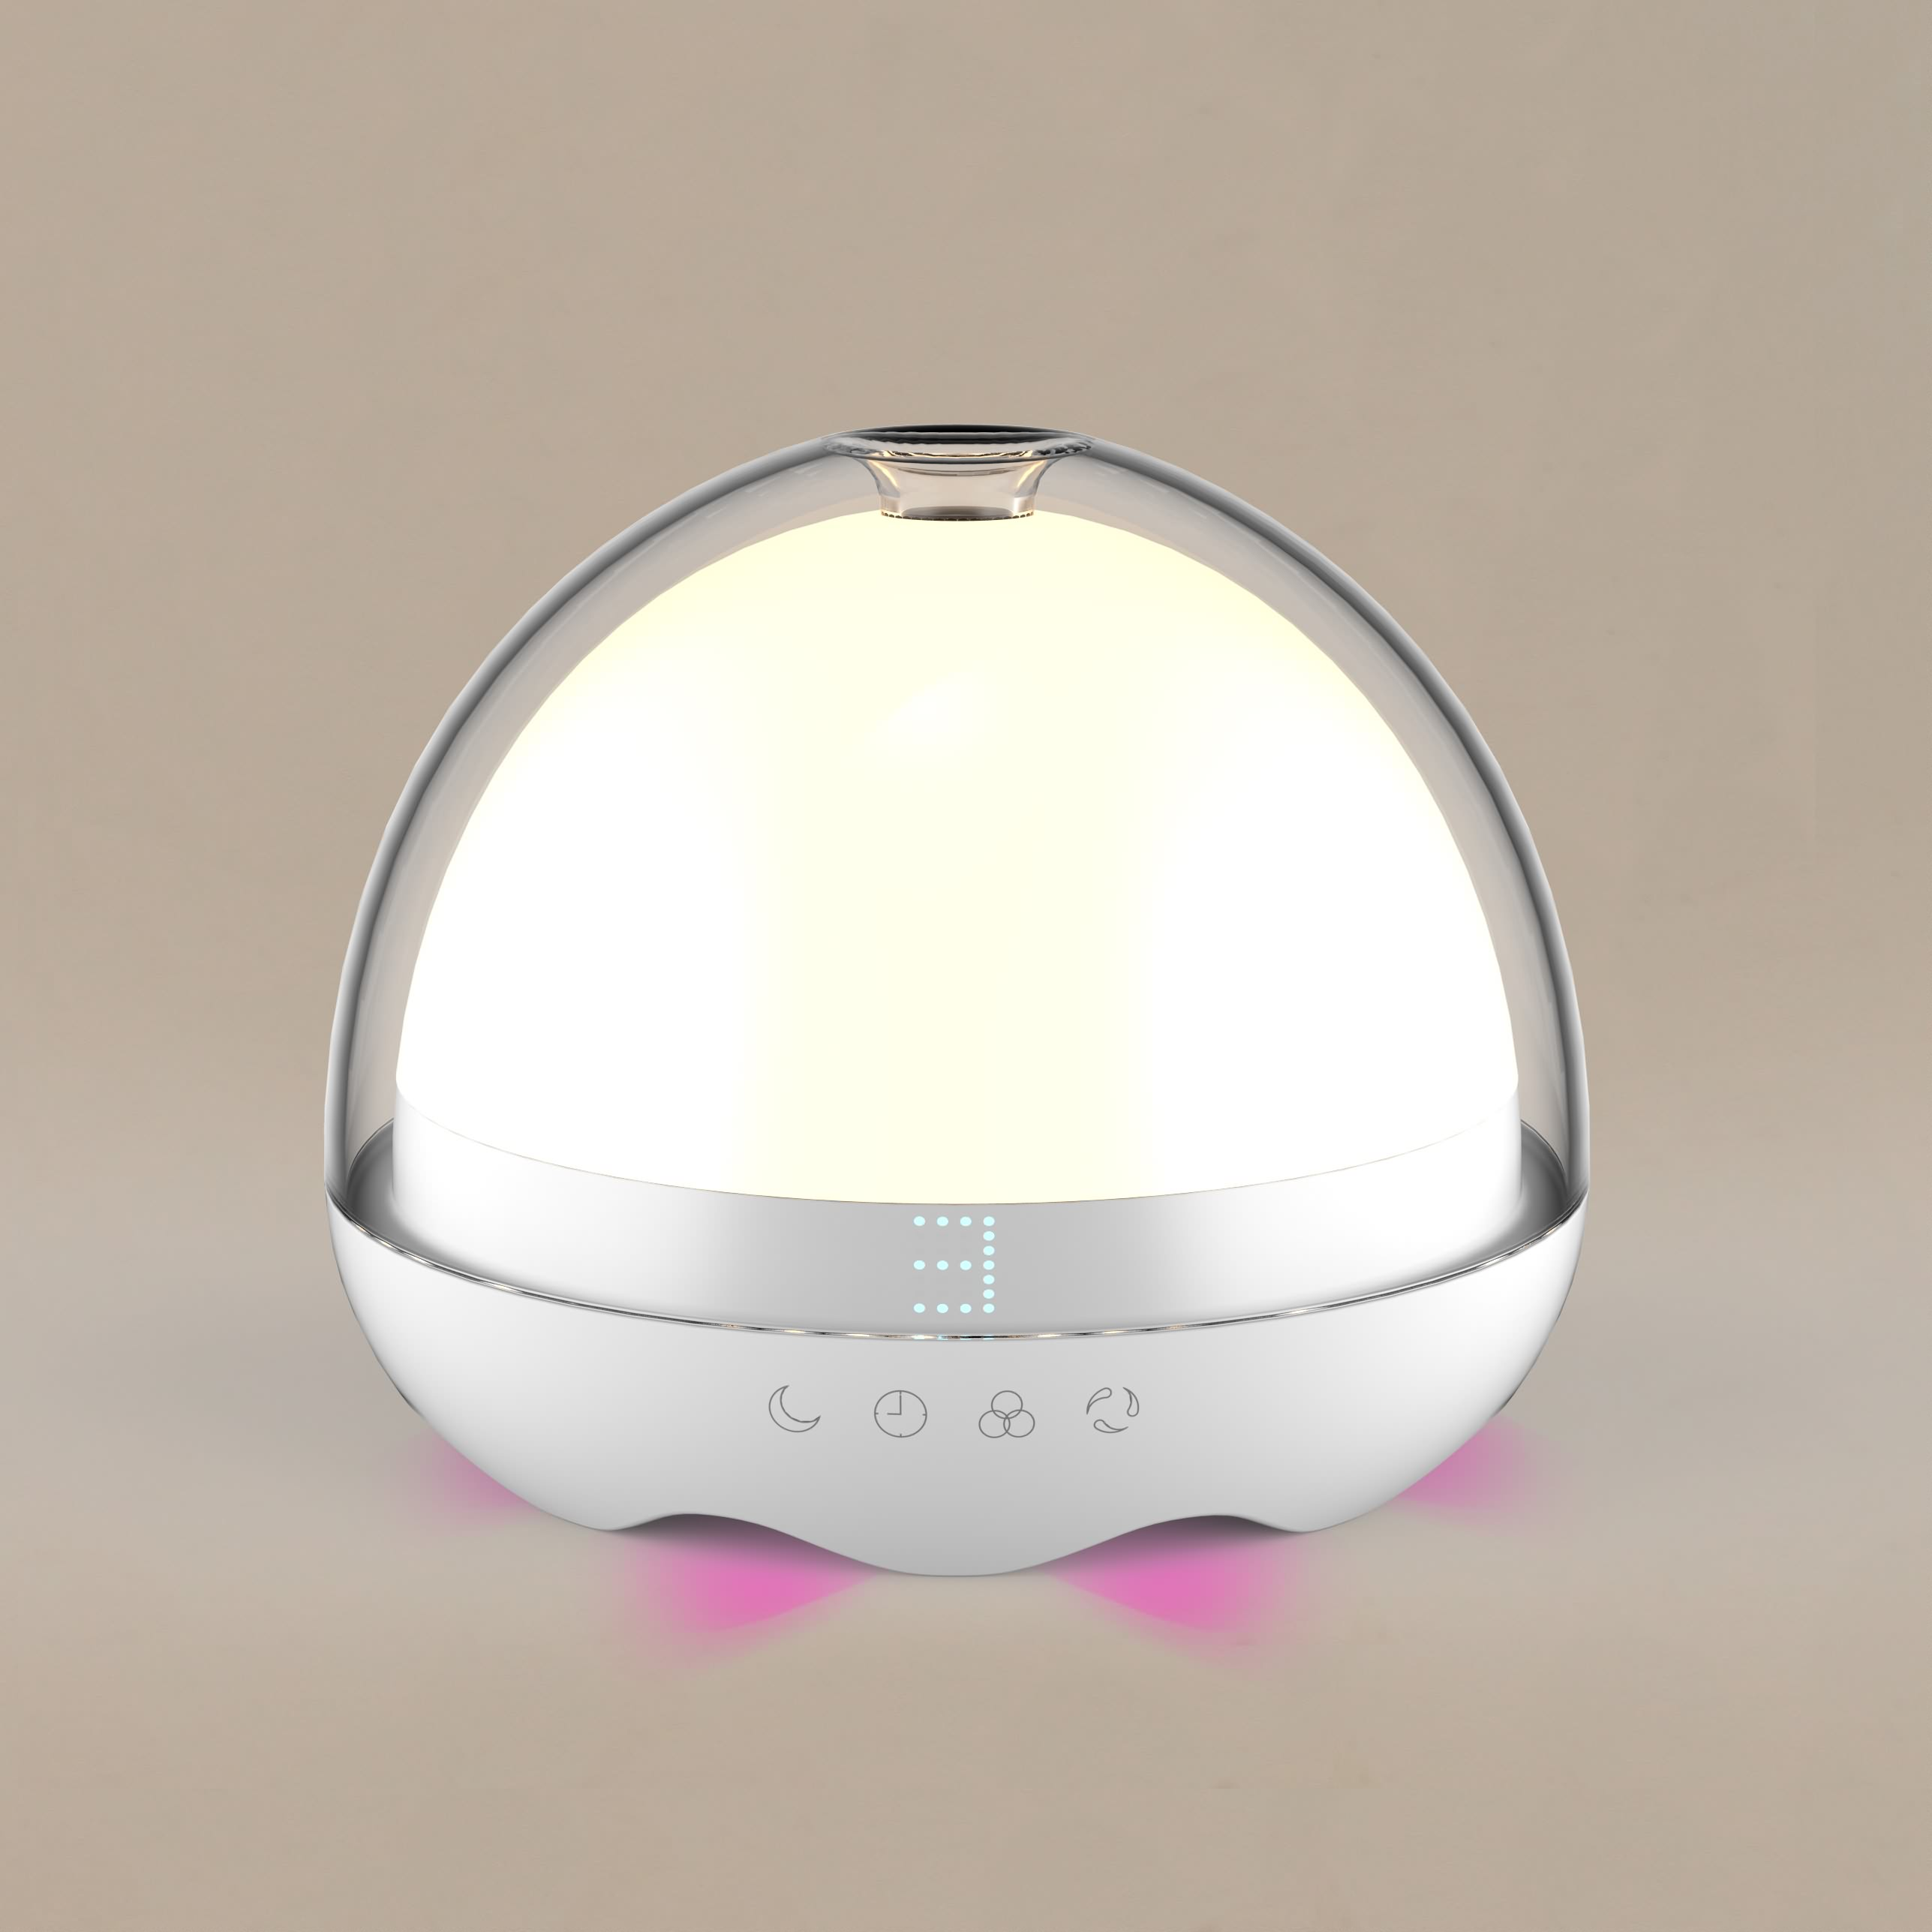 LED Bedside Lamp Q100 Featured Image